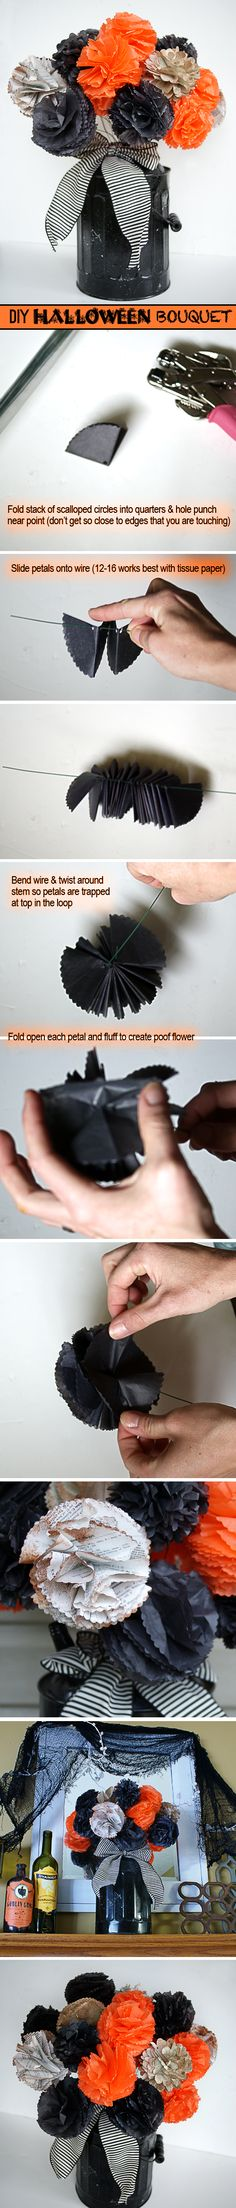 How to Make a Halloween Bouquet Tissue Paper Flowers Tutorial @savedbyloves #Sizzix